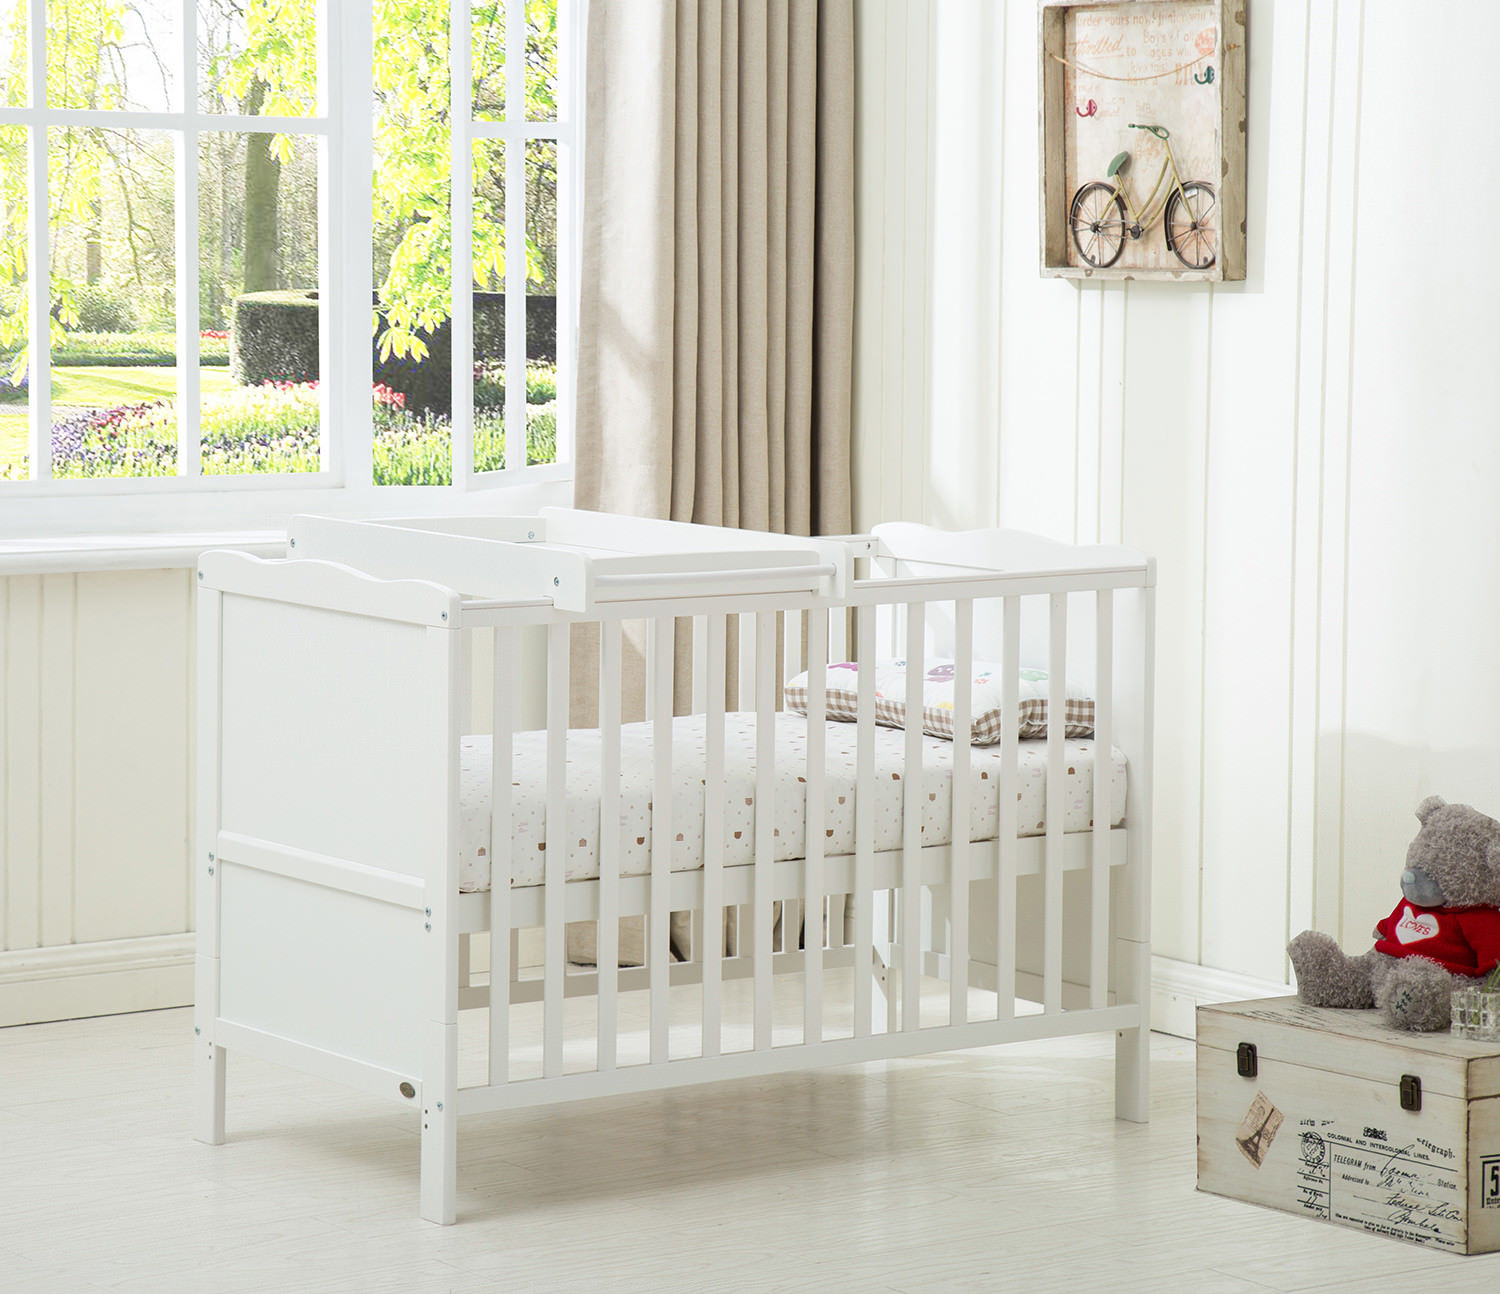 best service b5bf1 73523 NEW WHITE SOLID WOOD BABY COT BED with TOP CHANGER AND MATTRESS